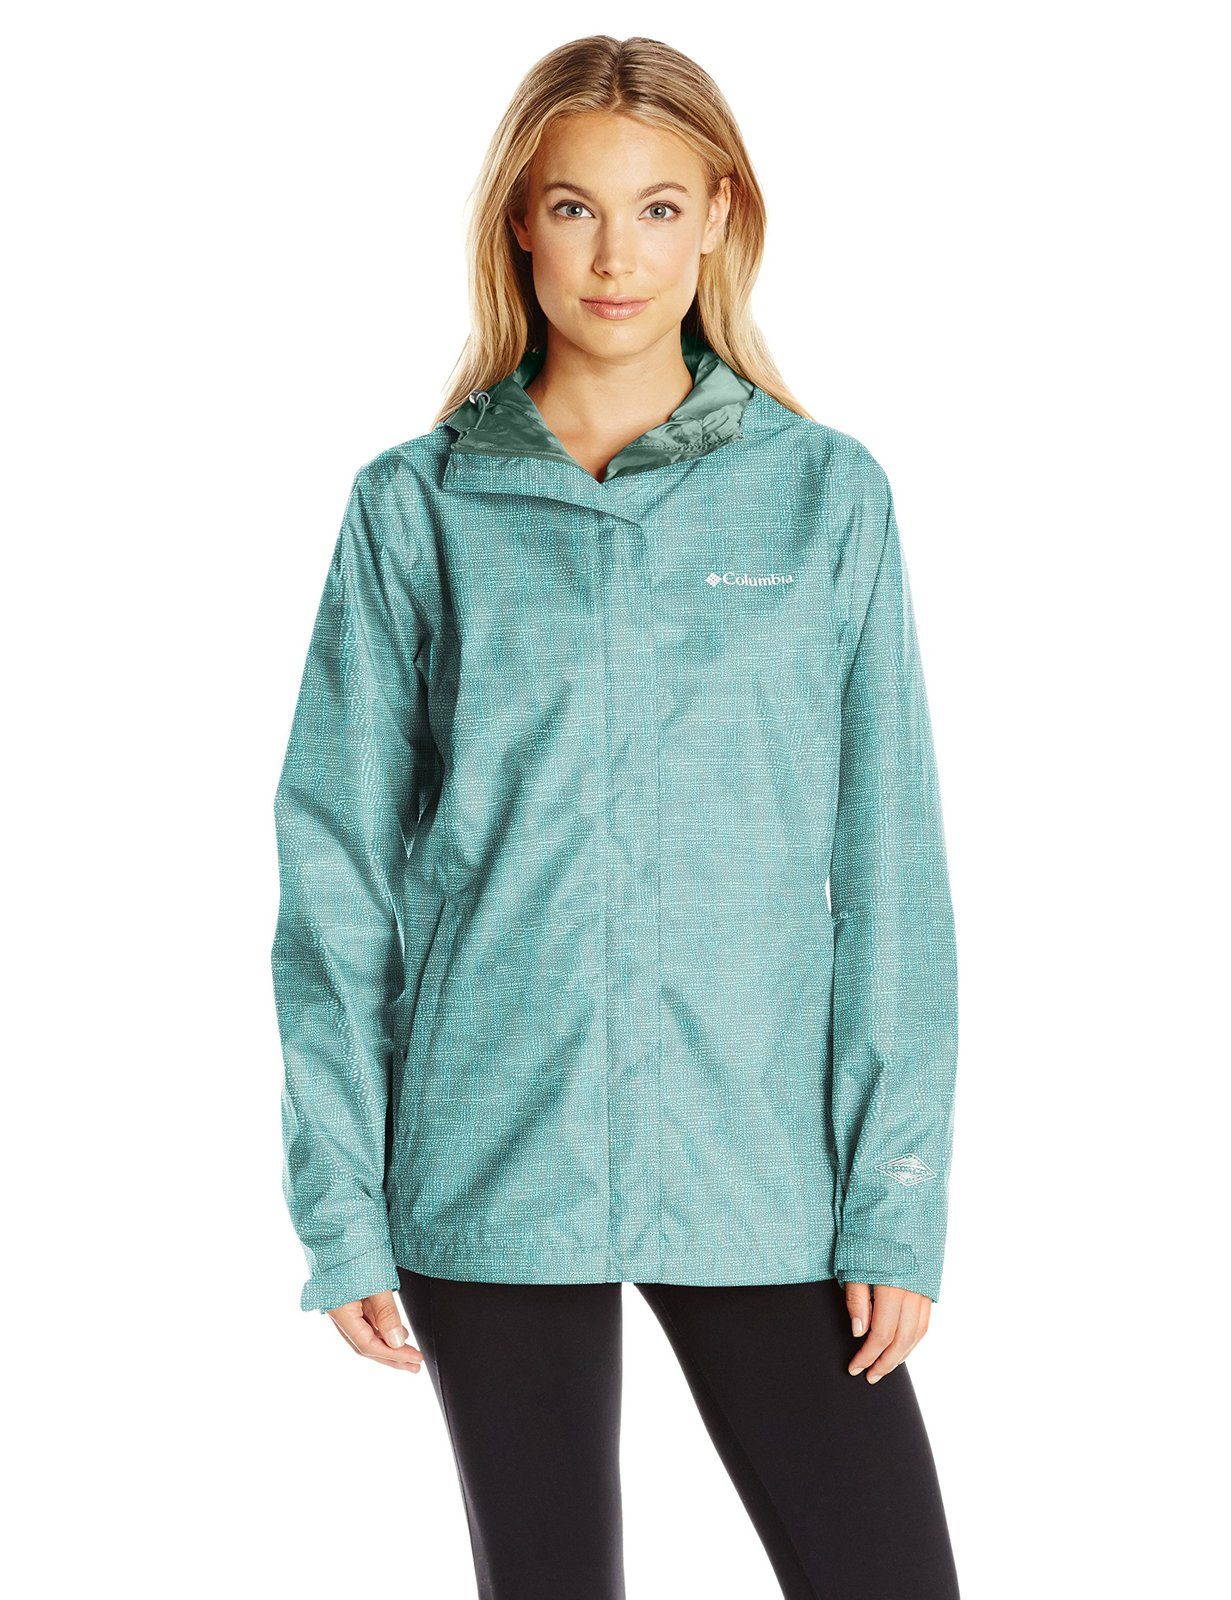 Columbia Women's Arcadia Print Jacket, Pond/Dotty Dye, Small